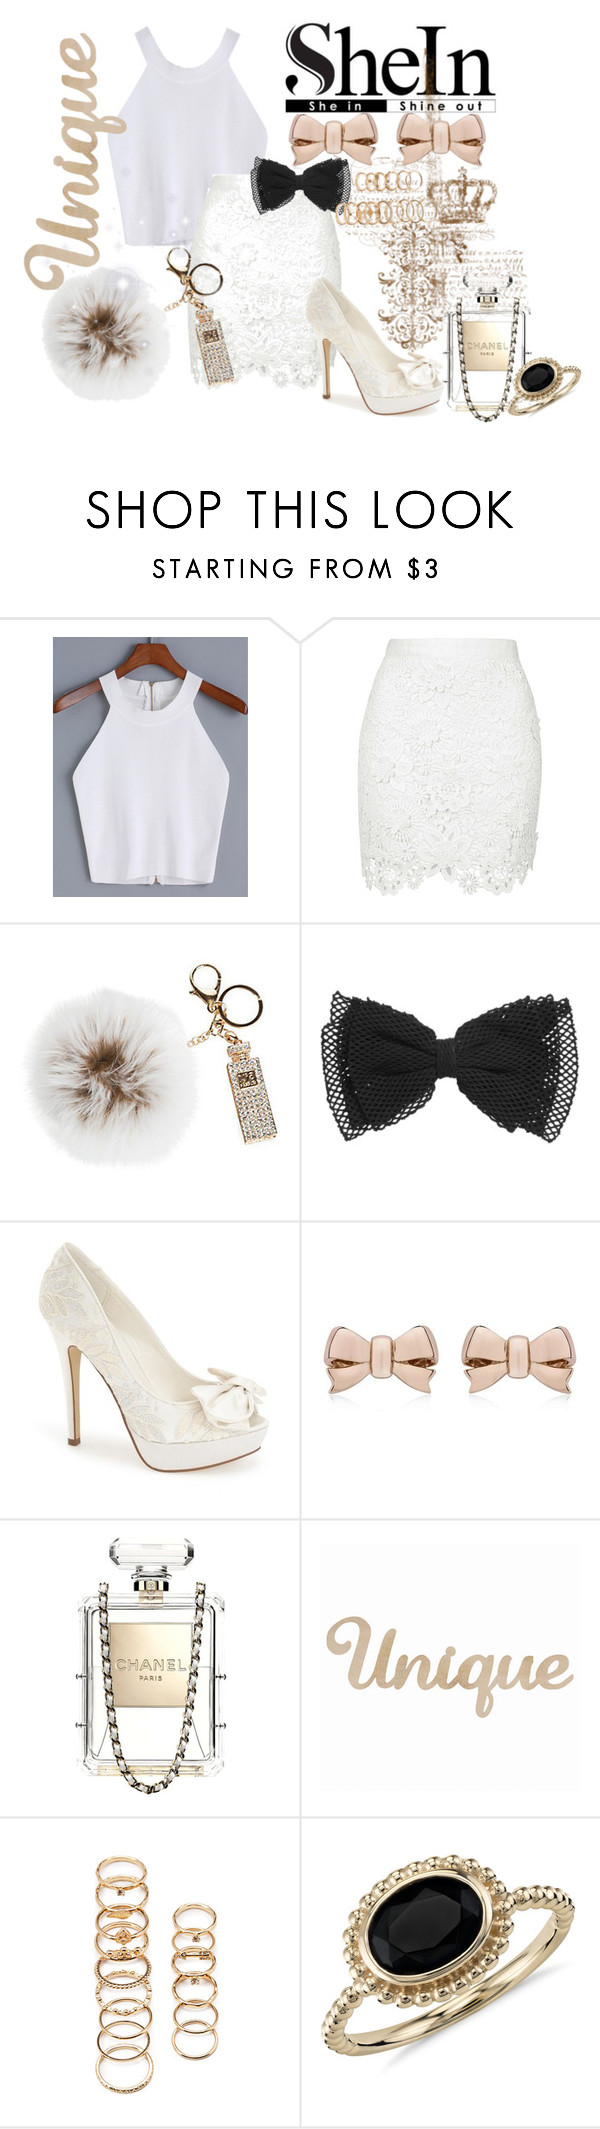 """SheIn"" by sapphire0205 ❤ liked on Polyvore featuring Overland Sheepskin Co., Menbur, Thomas Sabo, Chanel, Forever 21 and Blue Nile"